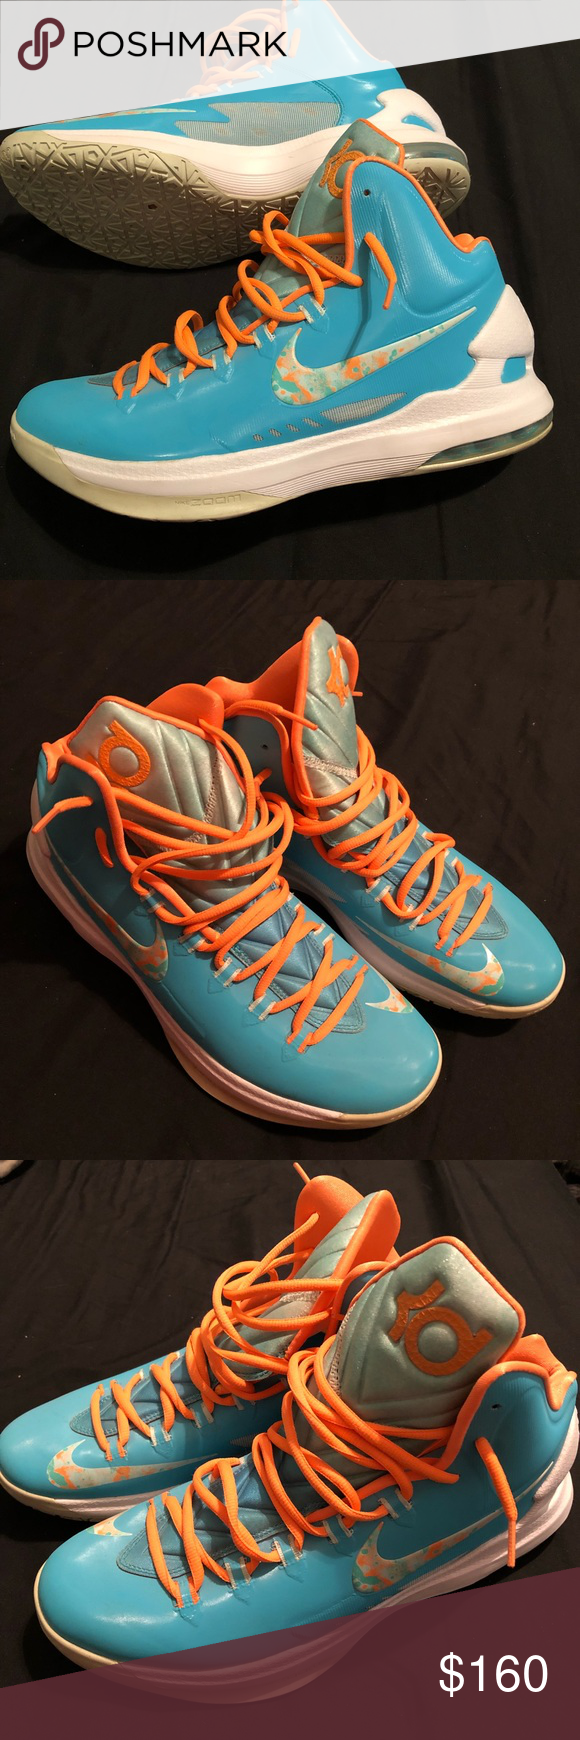 33b23abe286f Men s KD Easter 5s. Baby blue   orange Kevin Durant Nike sneakers. Worn  twice. Nike Shoes Sneakers